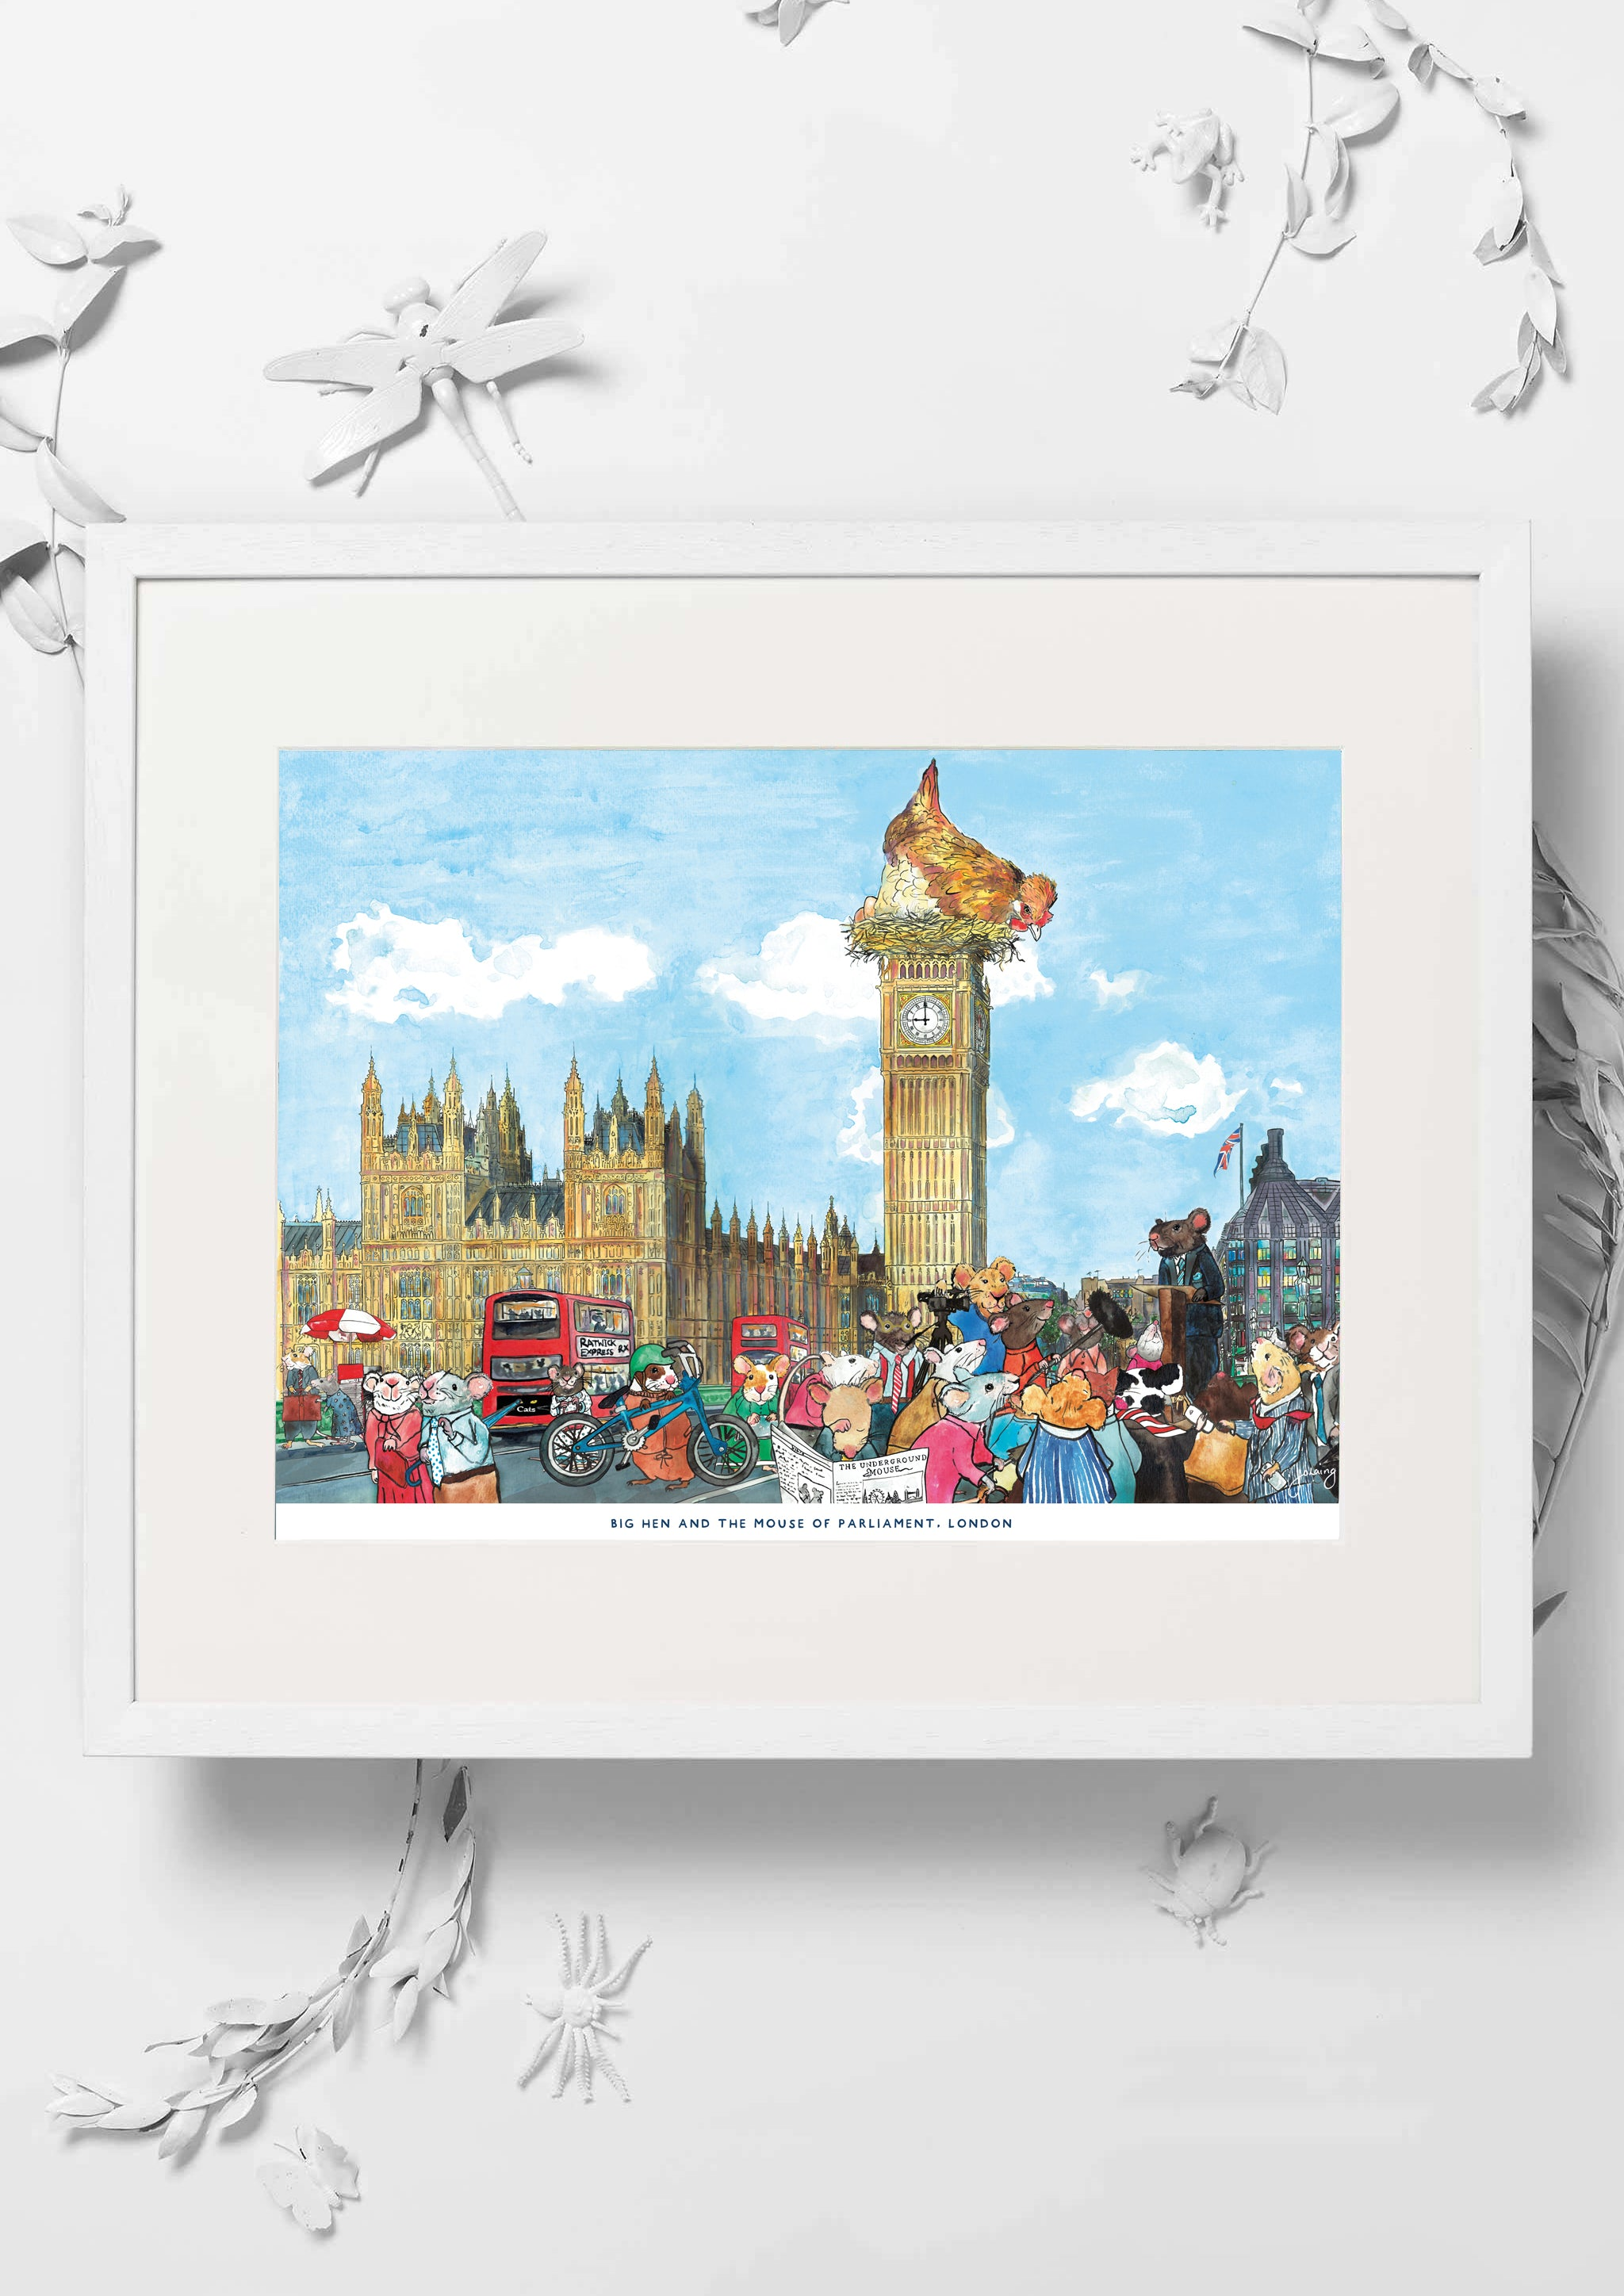 Big Hen and the Mouse of Parliament features original watercolour artwork of the iconic Palace of Westminster and Big Ben clocktower.